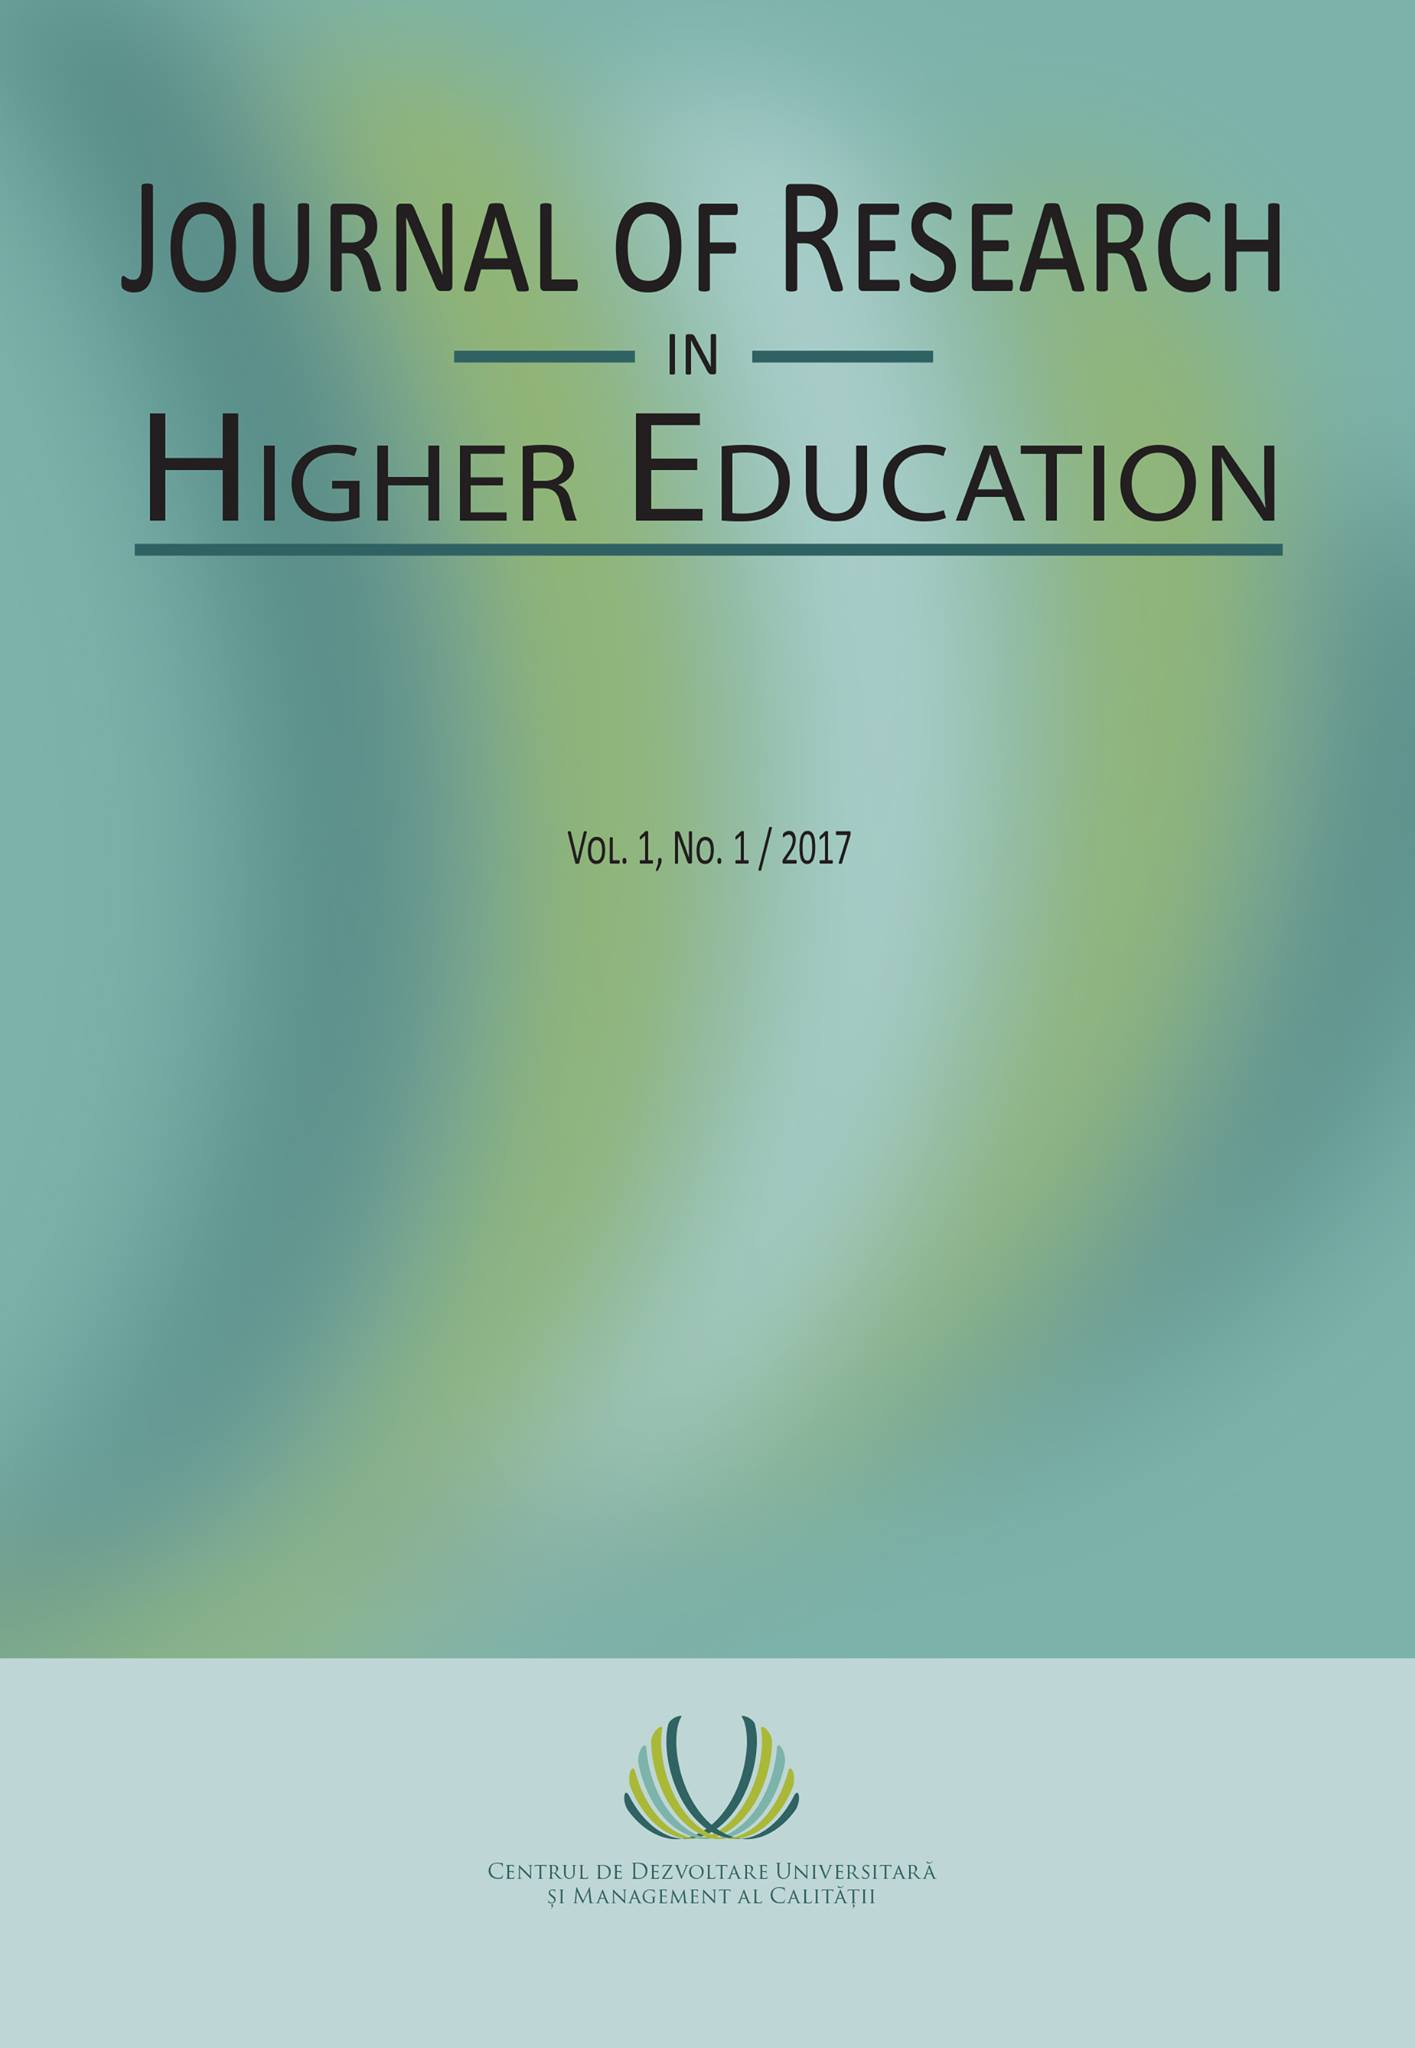 Journal of Research in Higher Education